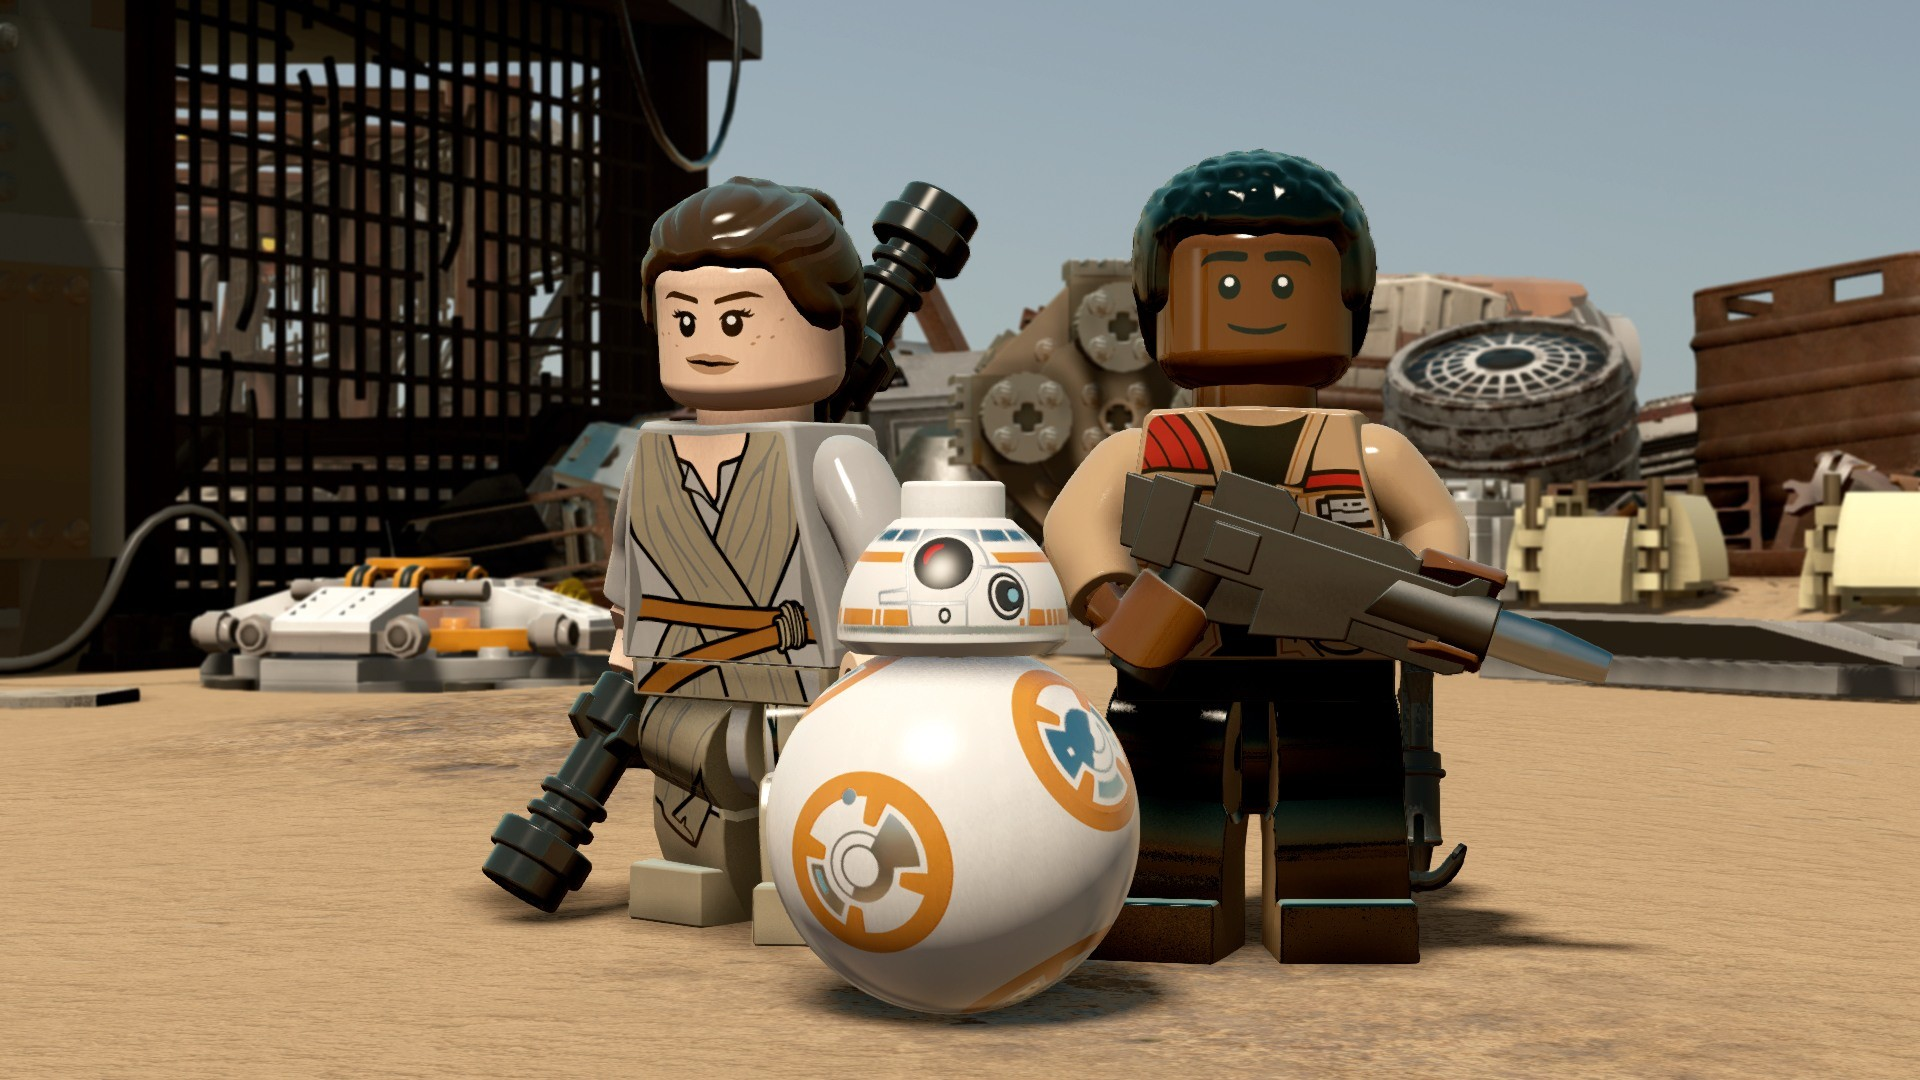 LEGO Star Wars: The Force Awakens Images